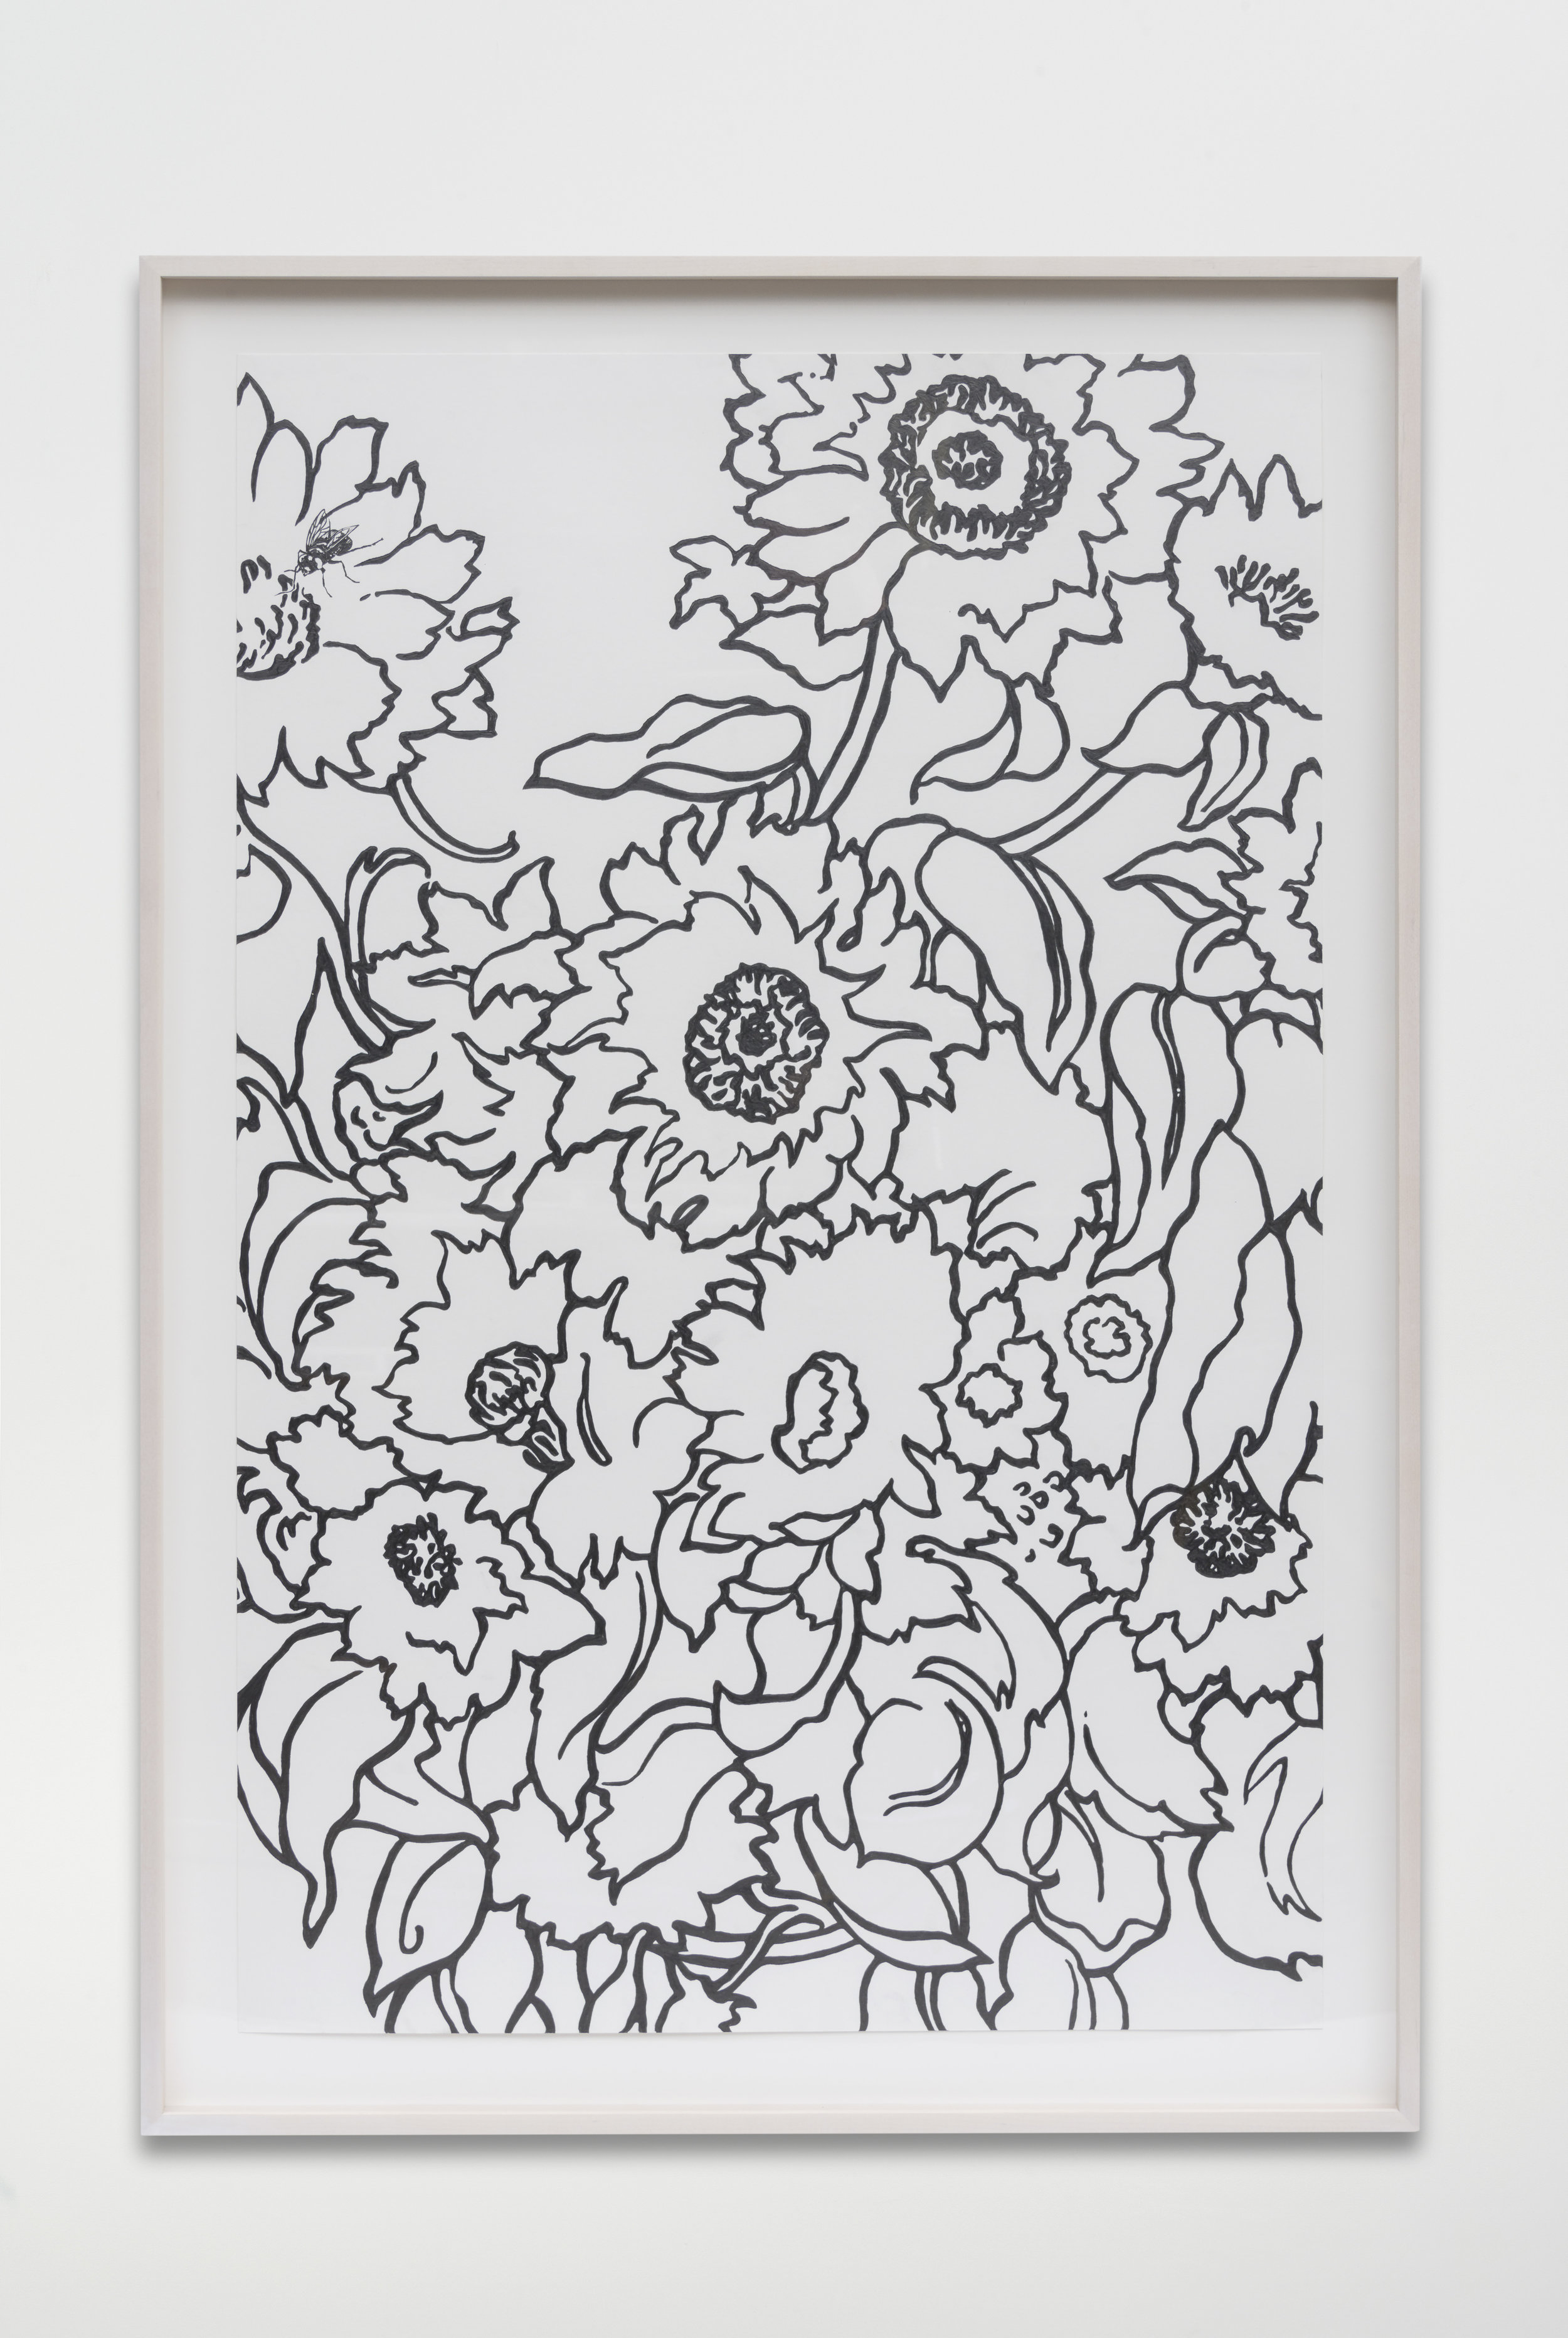 Nathan Mabry, Bouquet (For Claude), 2017 graphite on paper 120,7 x 82,5 x 5 cm - 47 1/2 x 32 1/2 x 2 inches (framed)